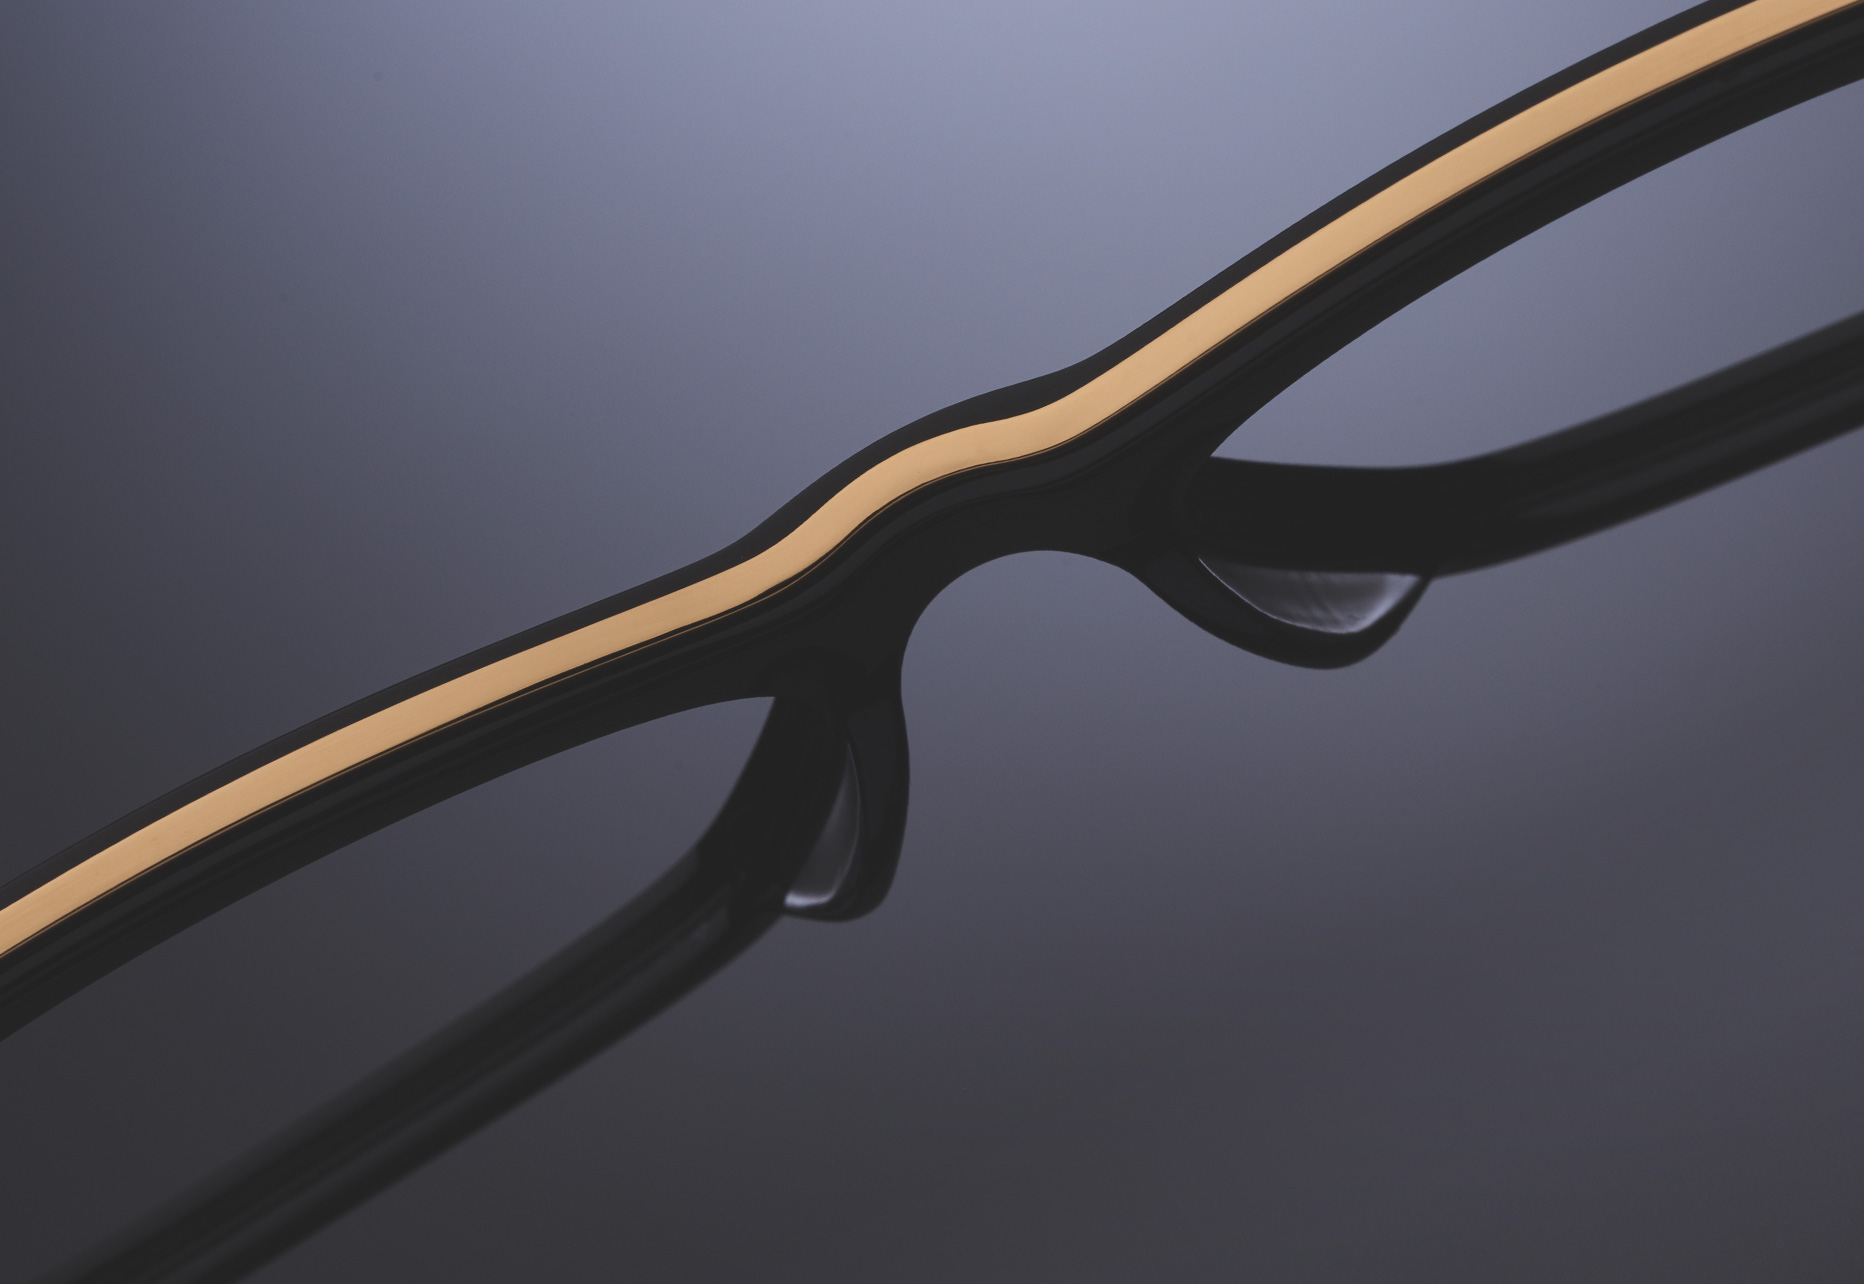 THIN TITANIUM INLAY EXTENDS THE ENTIRE LENGTH OF THE FRAME